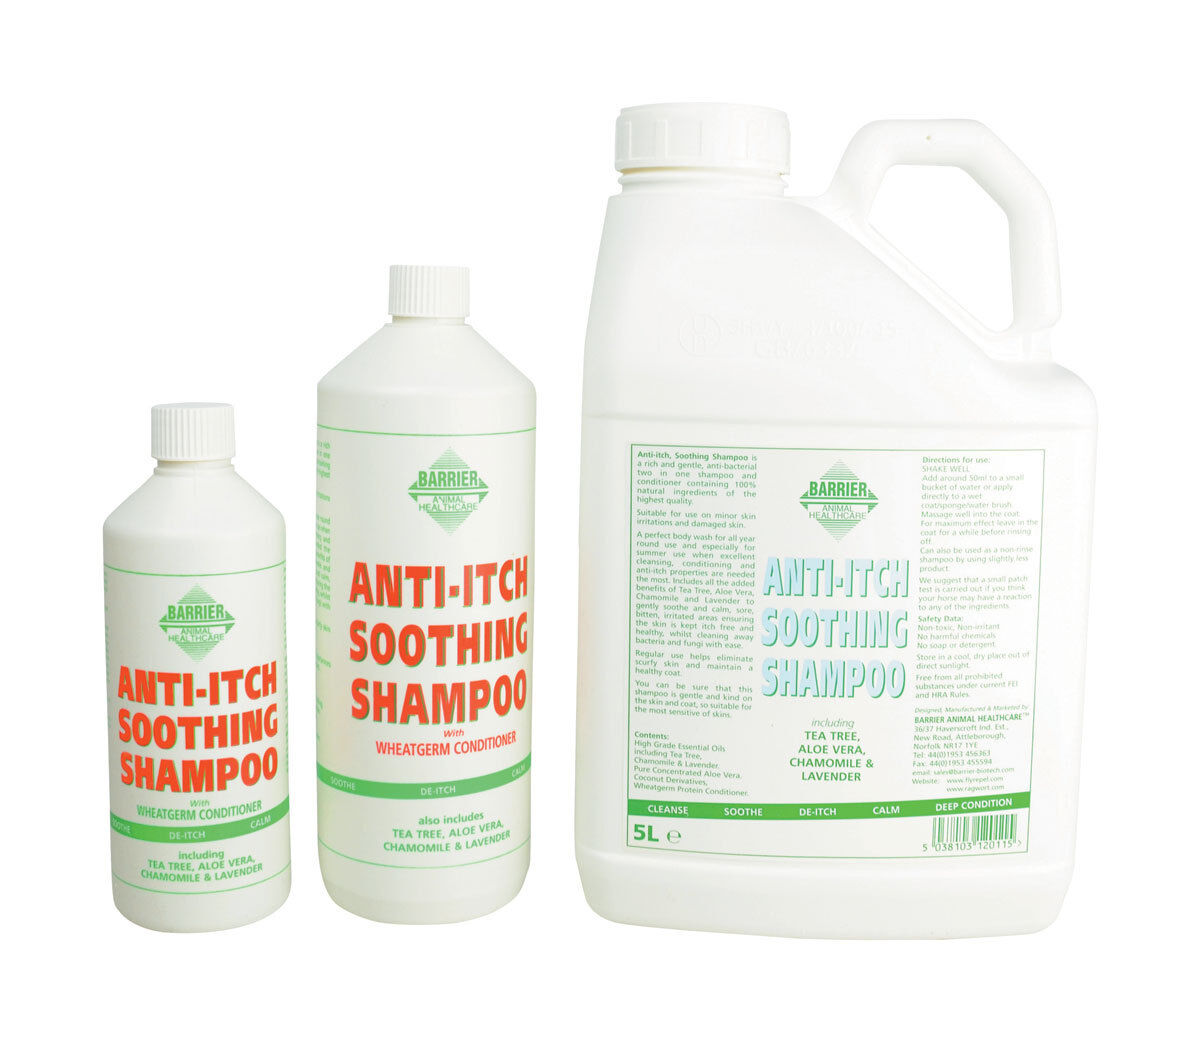 Barrier Anti-Itch Soothing Shampoo 500ml   1L   5L Equestrian Horse Care